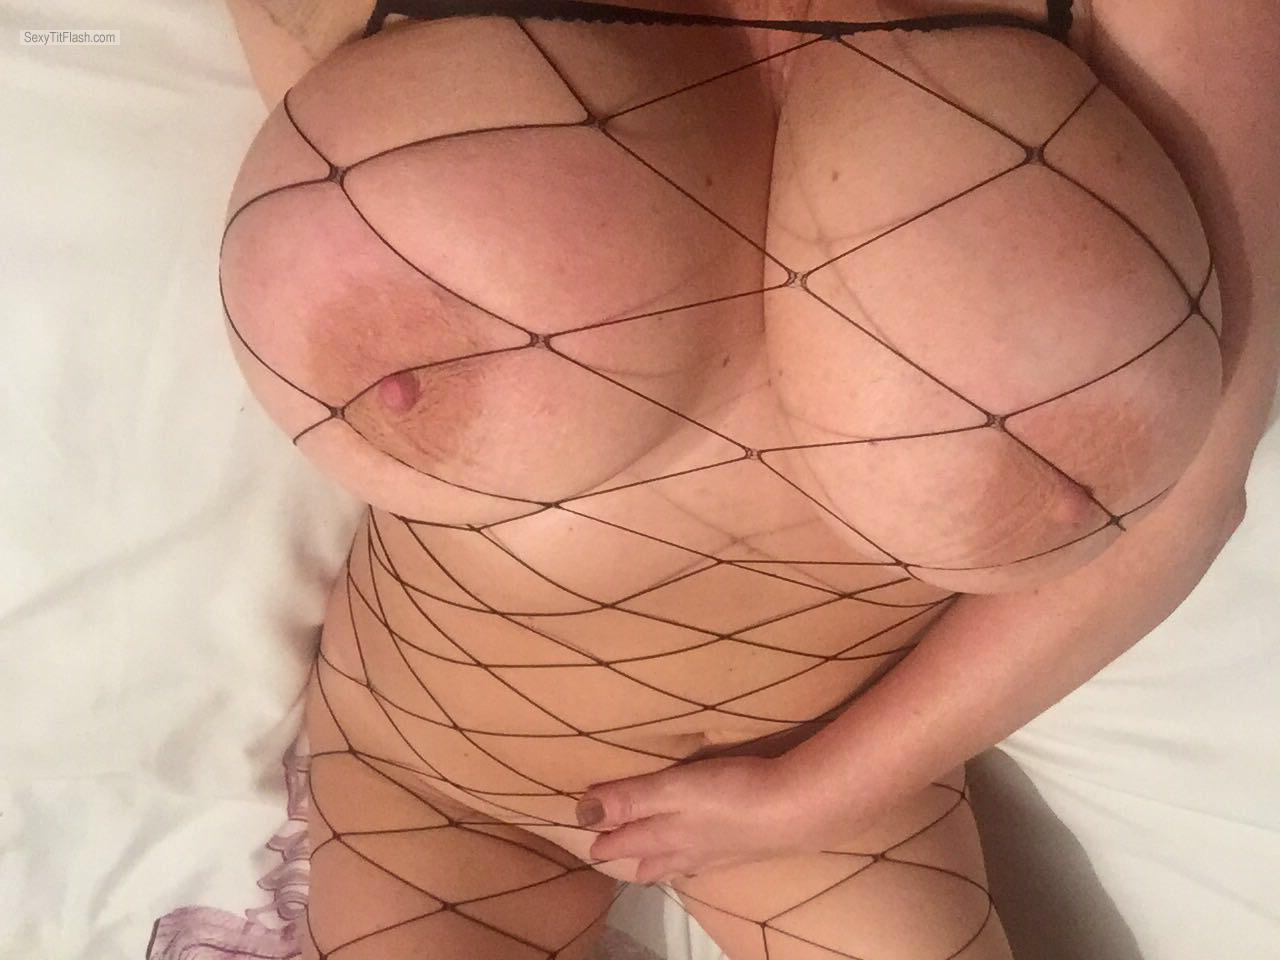 Very big Tits Of My Room Mate Selfie by Gilly